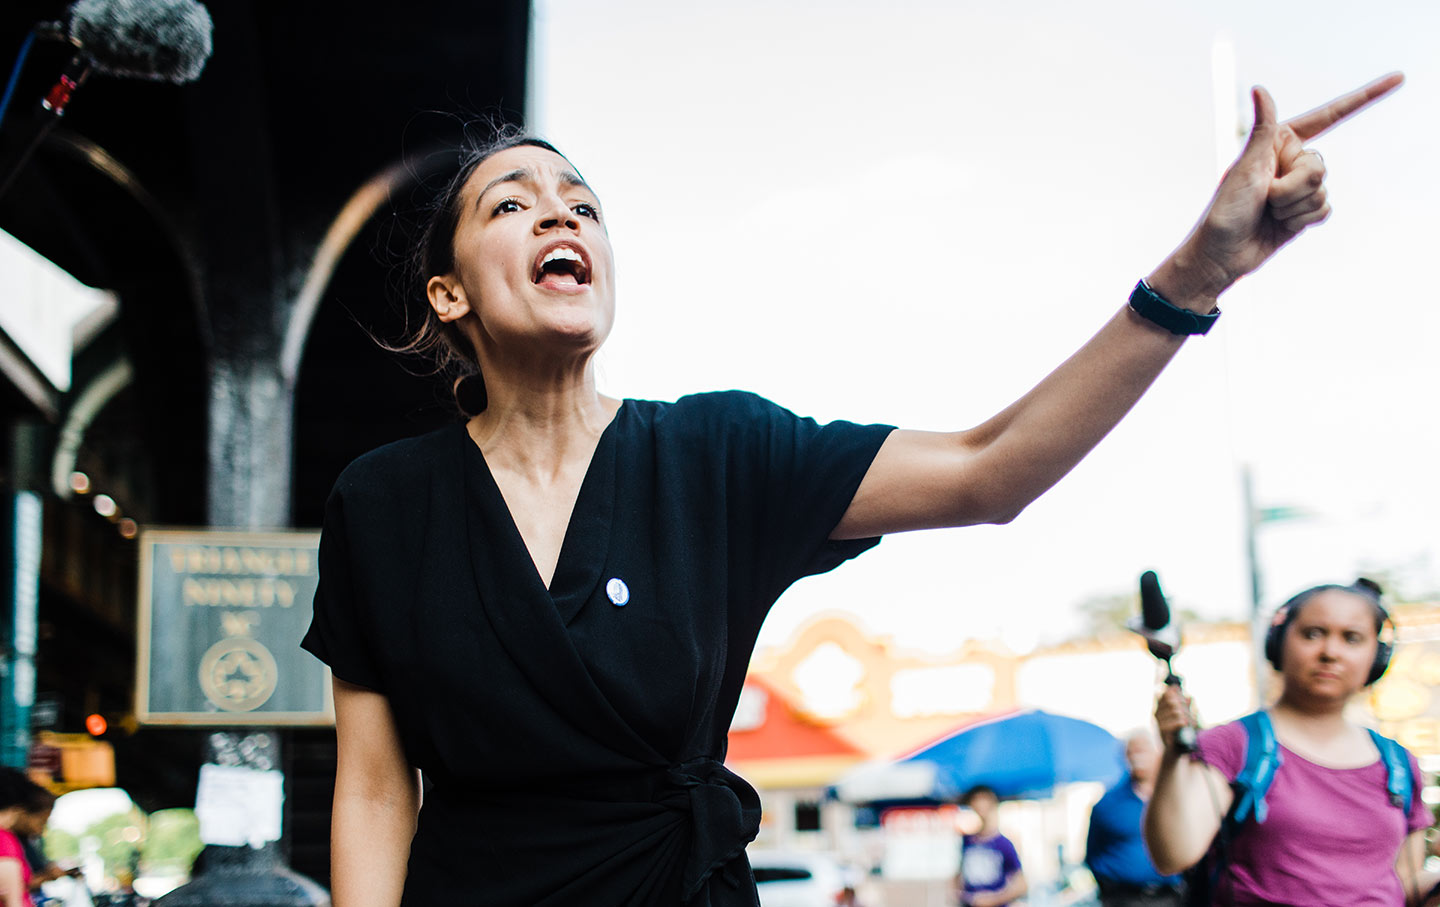 Photo of Unhinged Marxist Ocasio-Cortez blasts tech giants, demands absolute censorship of climate skeptics